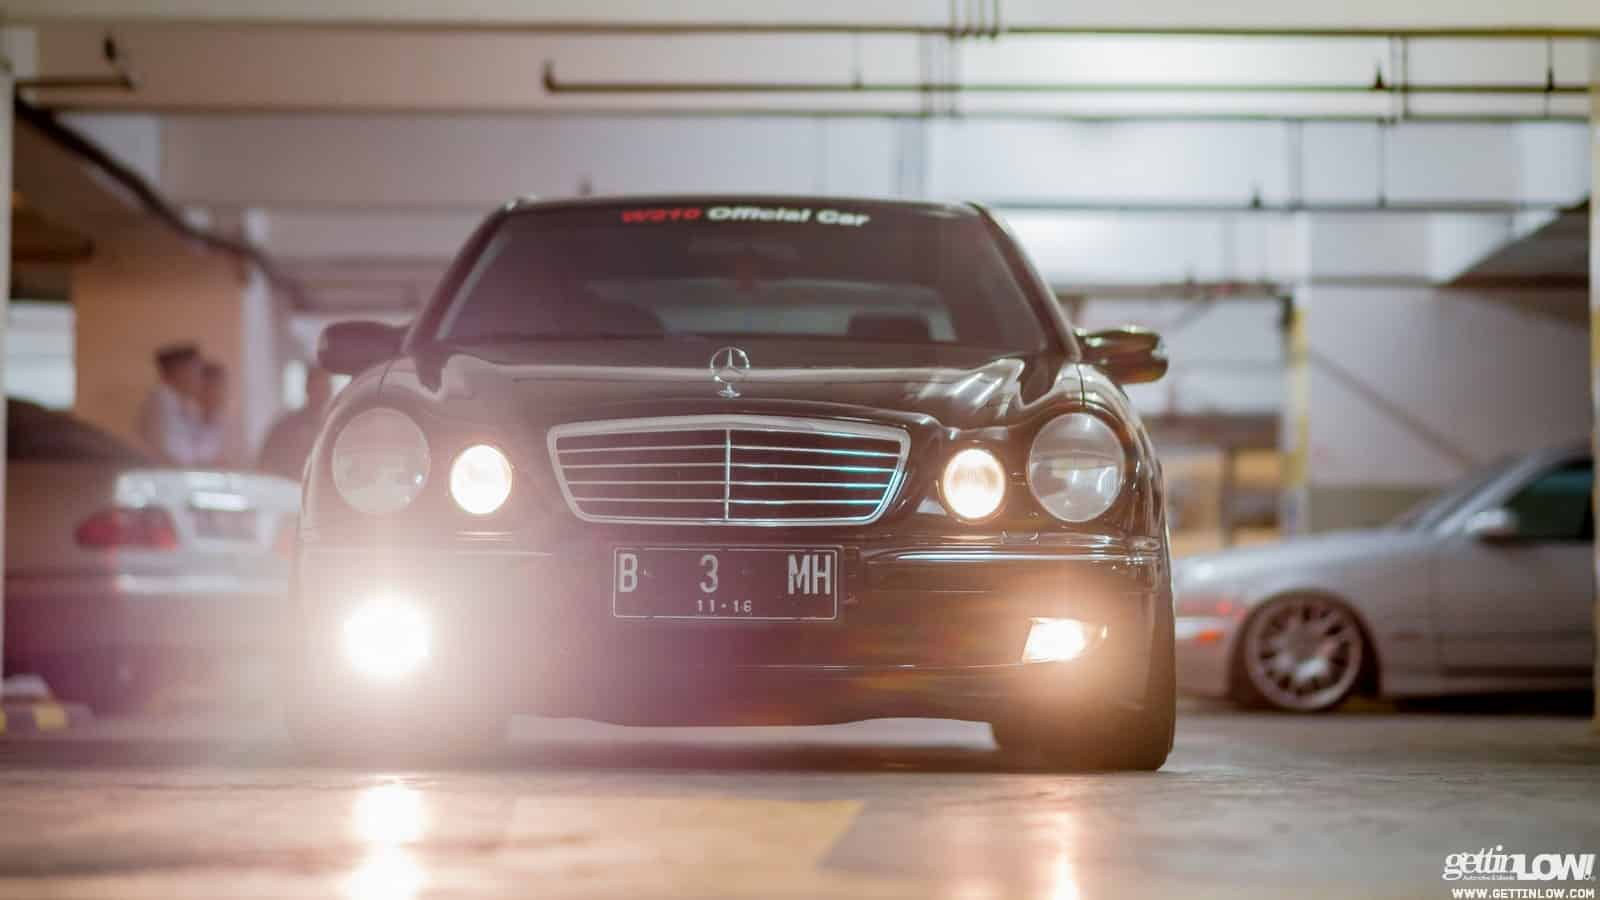 Michael Purindriyanto: 2000 Mercedes Benz W210-E280 Avantgarde